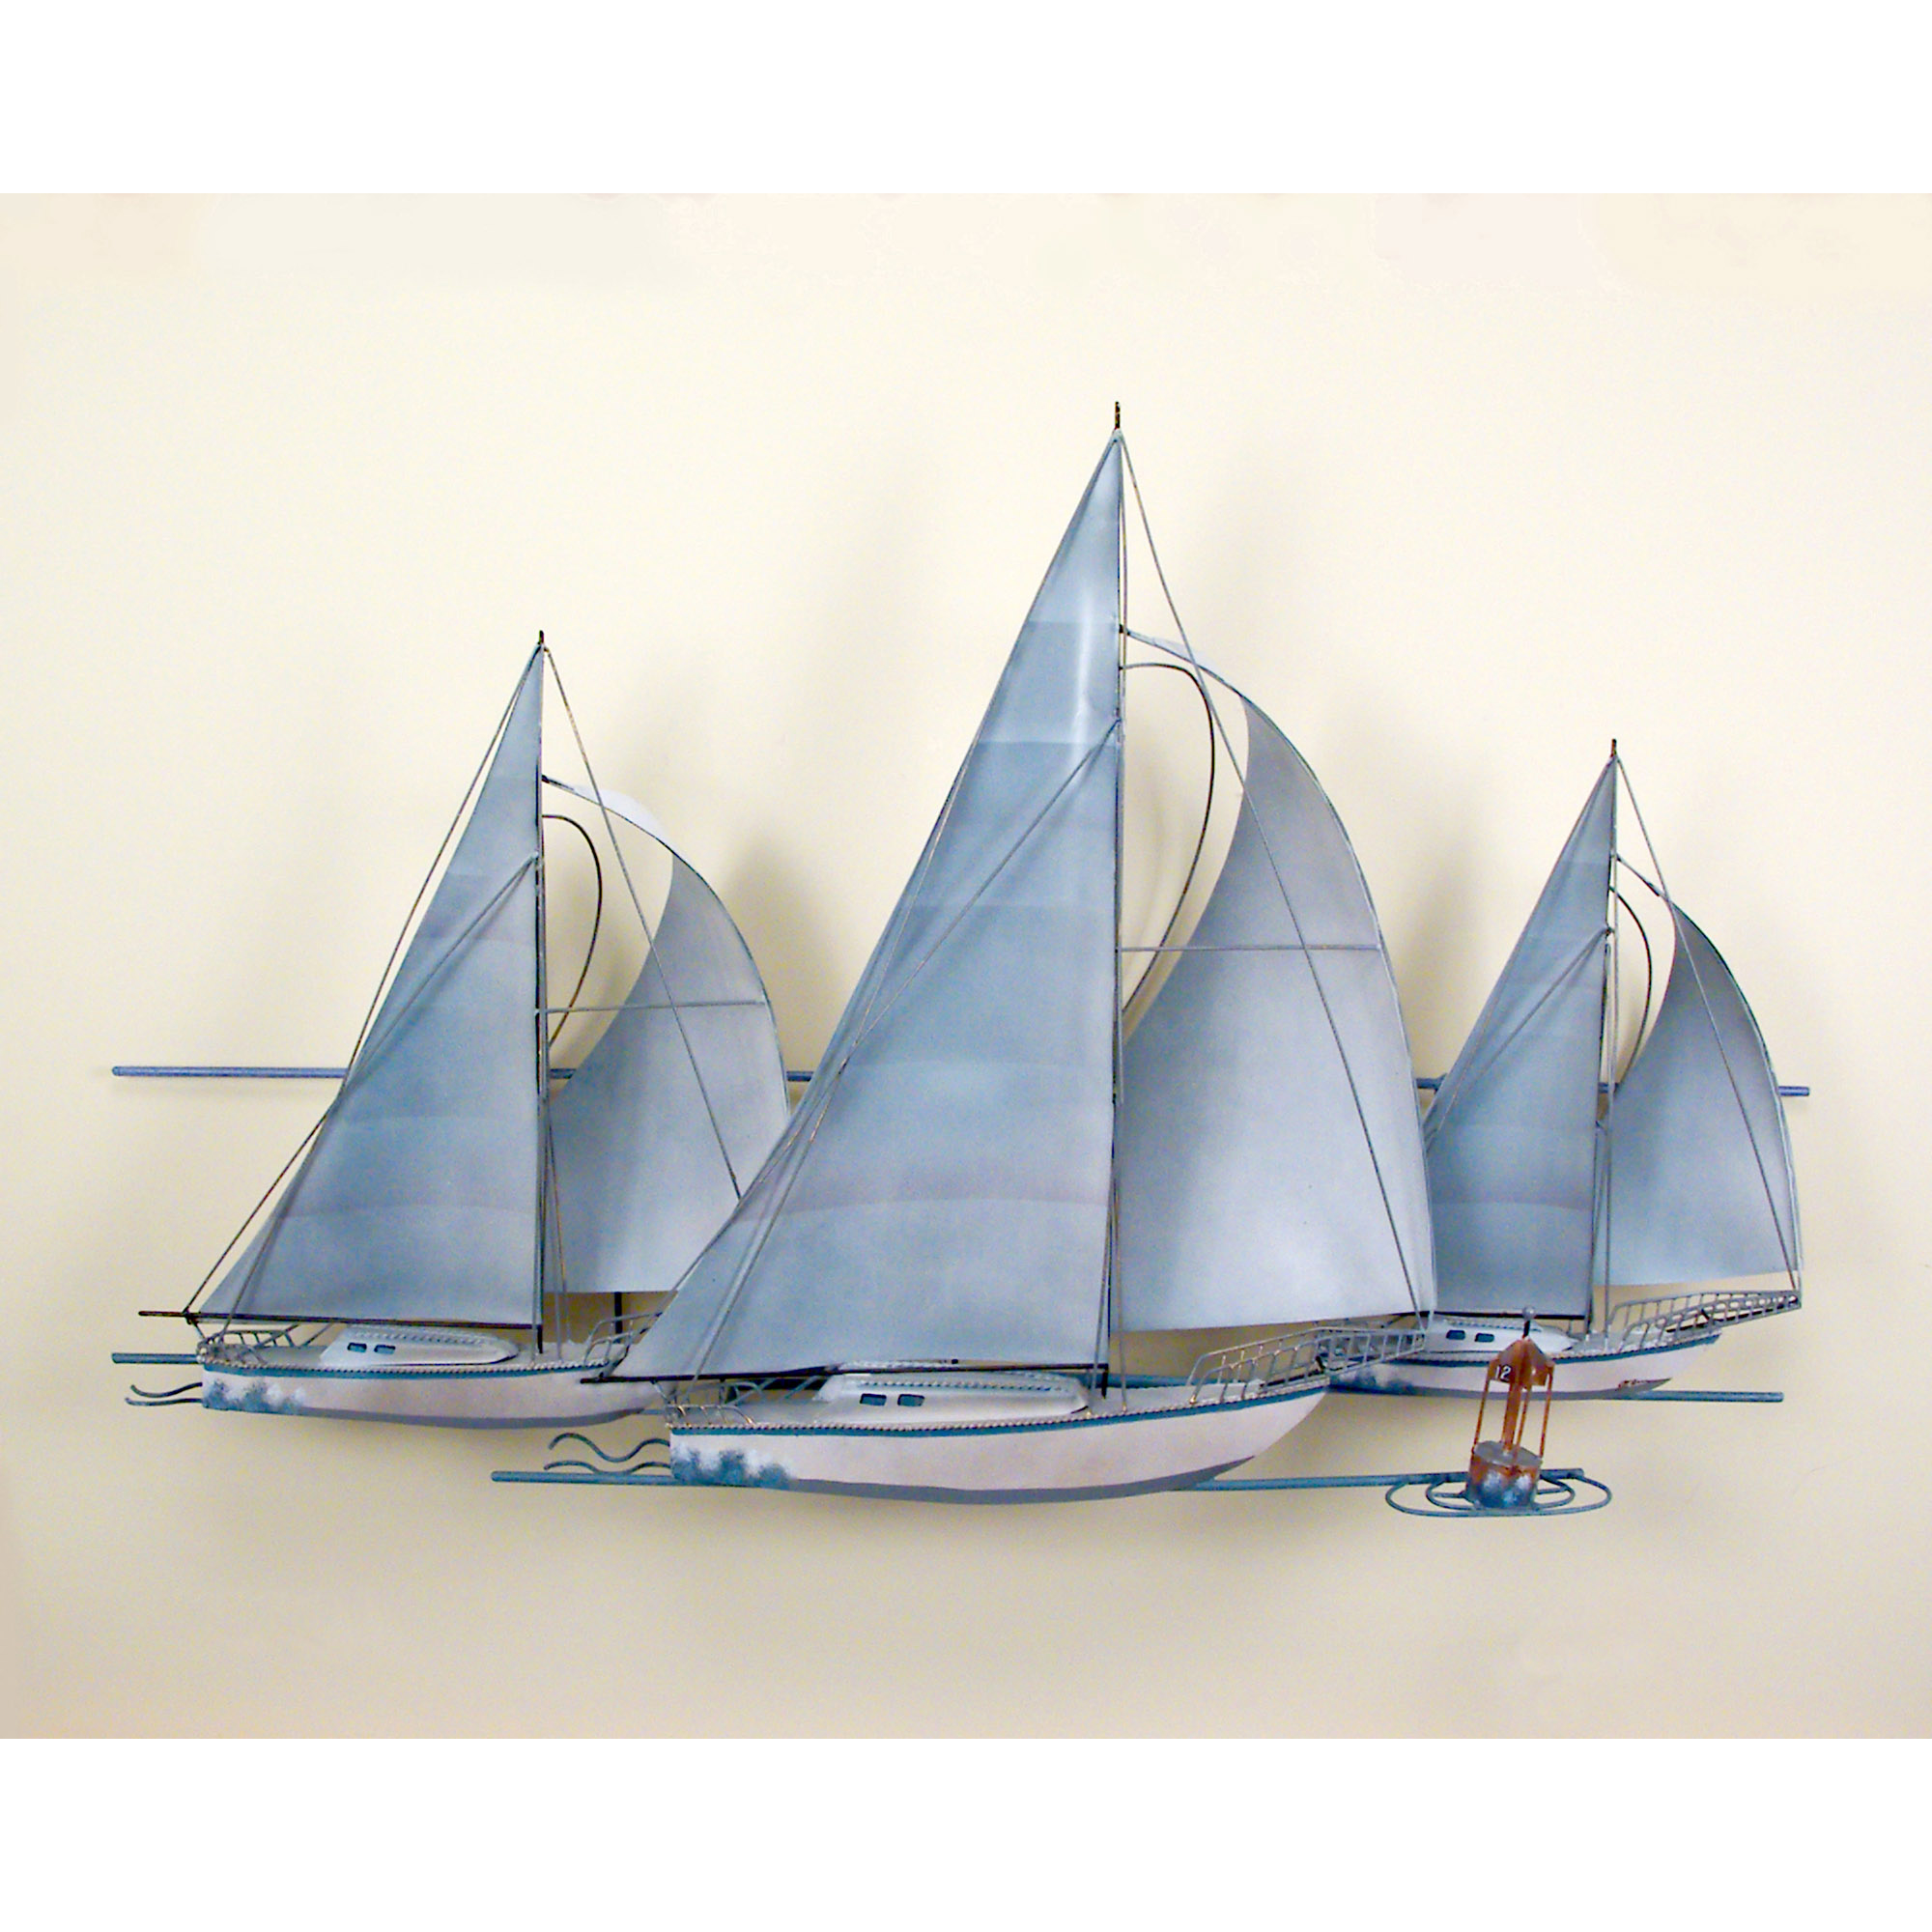 At The Races Three Sail Boats Race Wall Art Wall Hanging